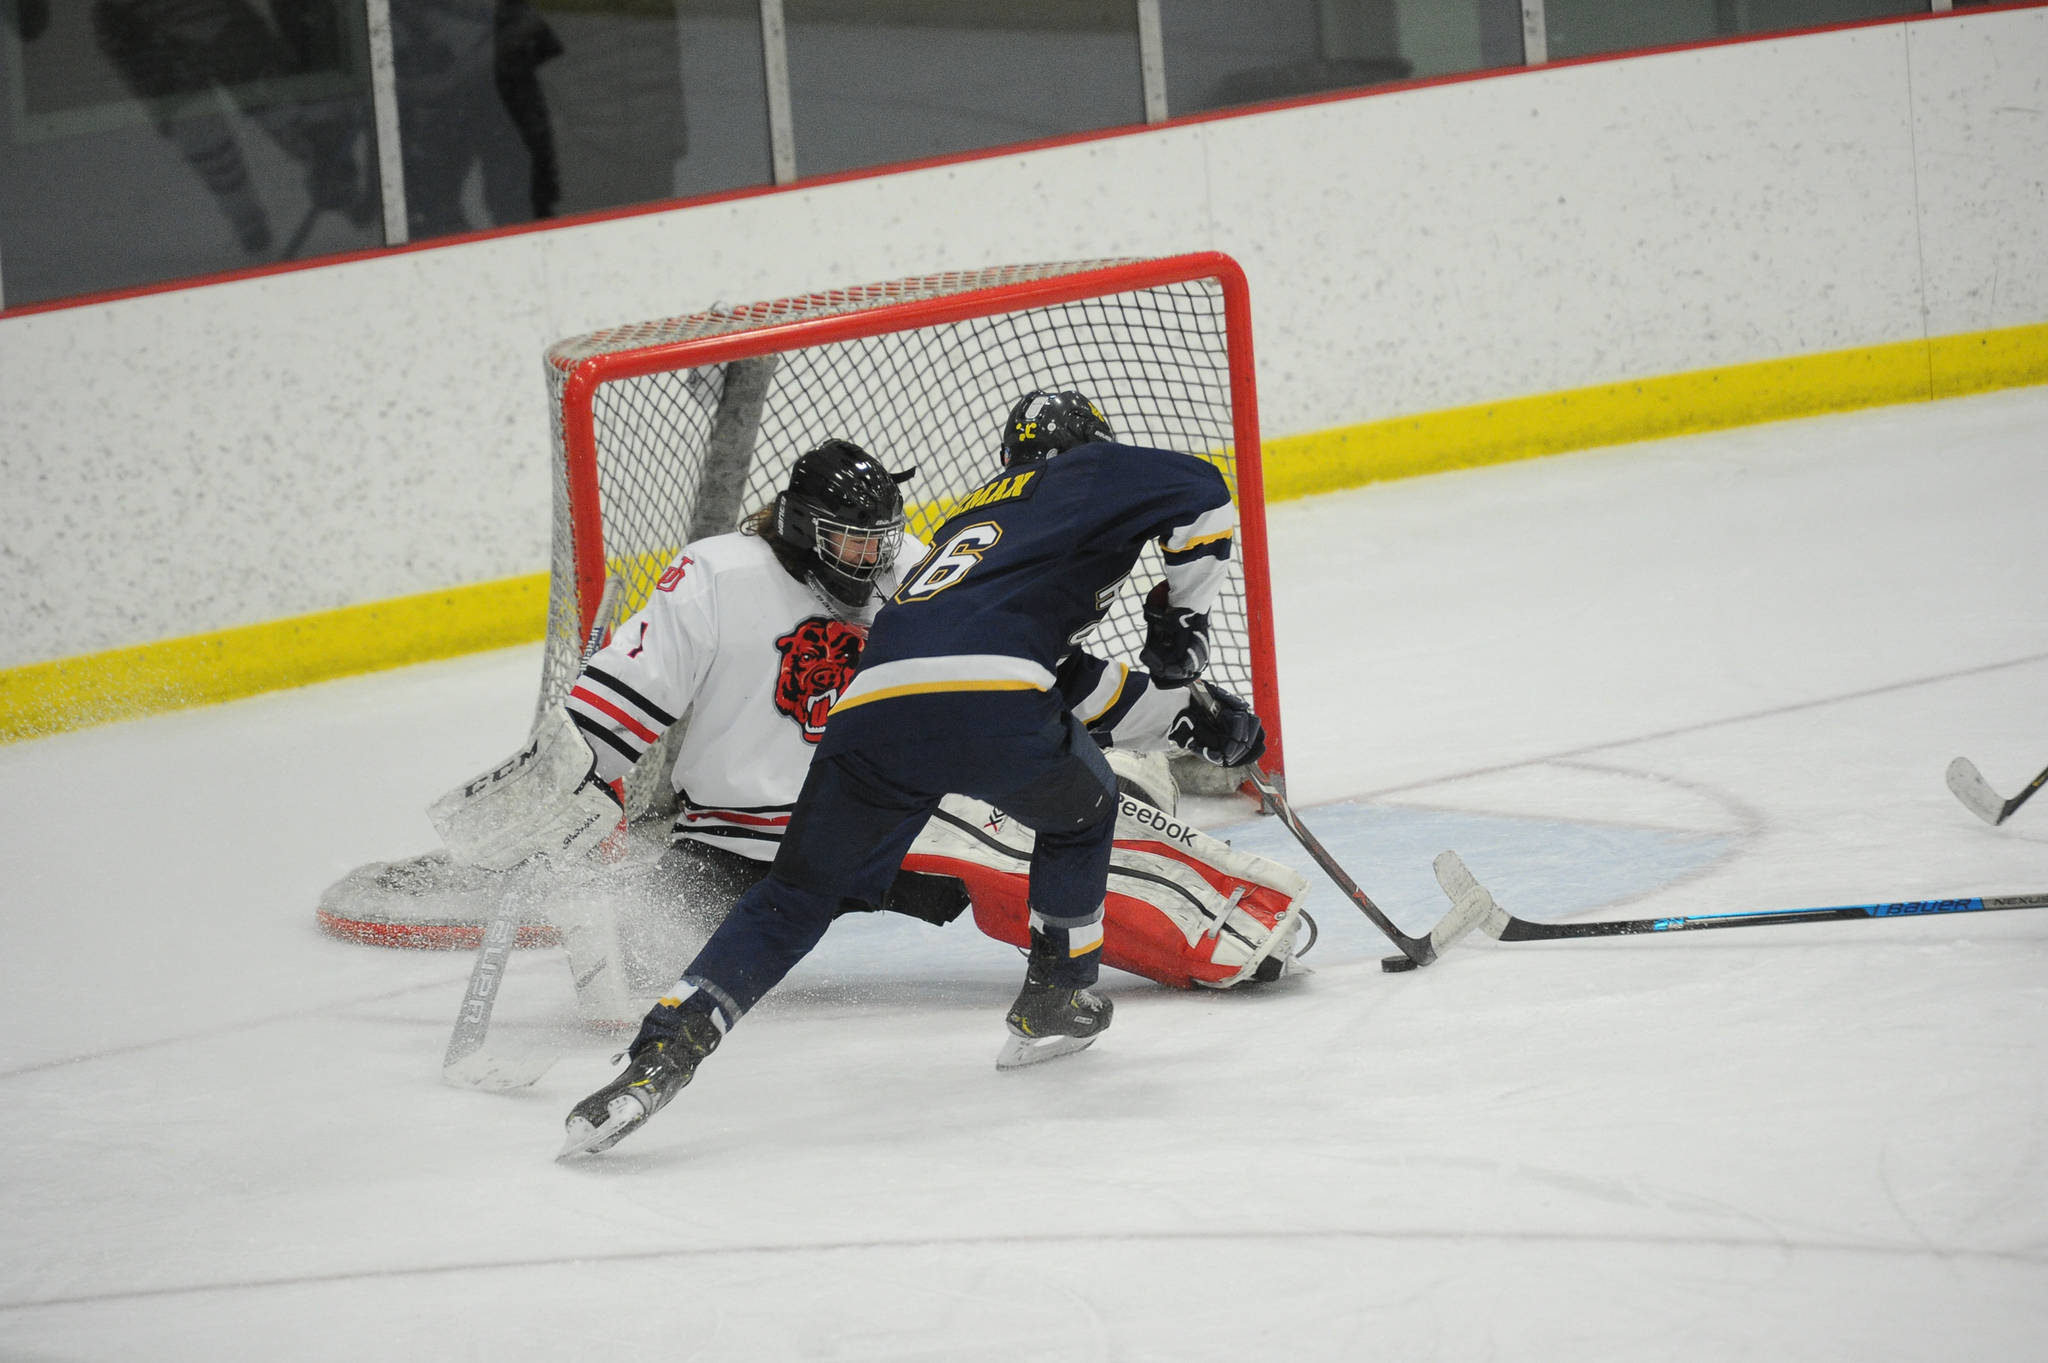 during the Crimson Bears' 3-0 semi-final loss in the Division II state hockey championships Friday, February 2, 2019. (Photo for the Empire by Michael Dinneen)